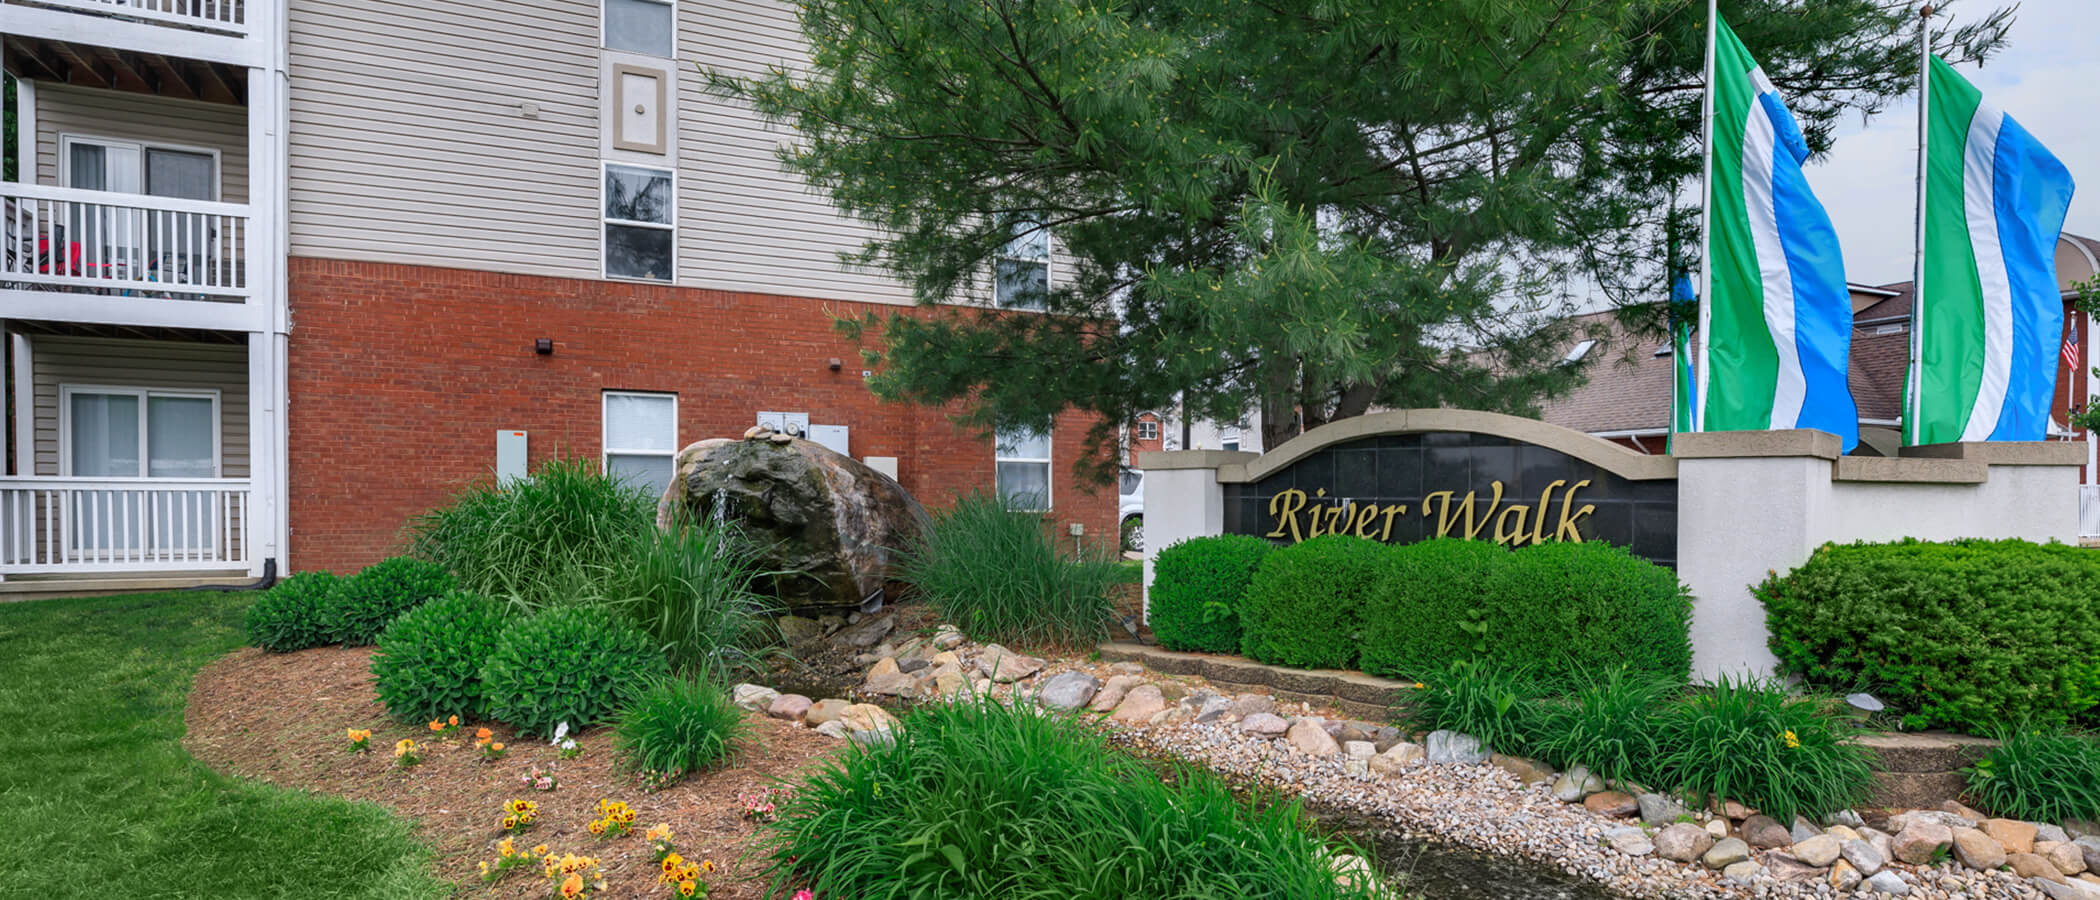 River Walk Apartments slideshow image 1